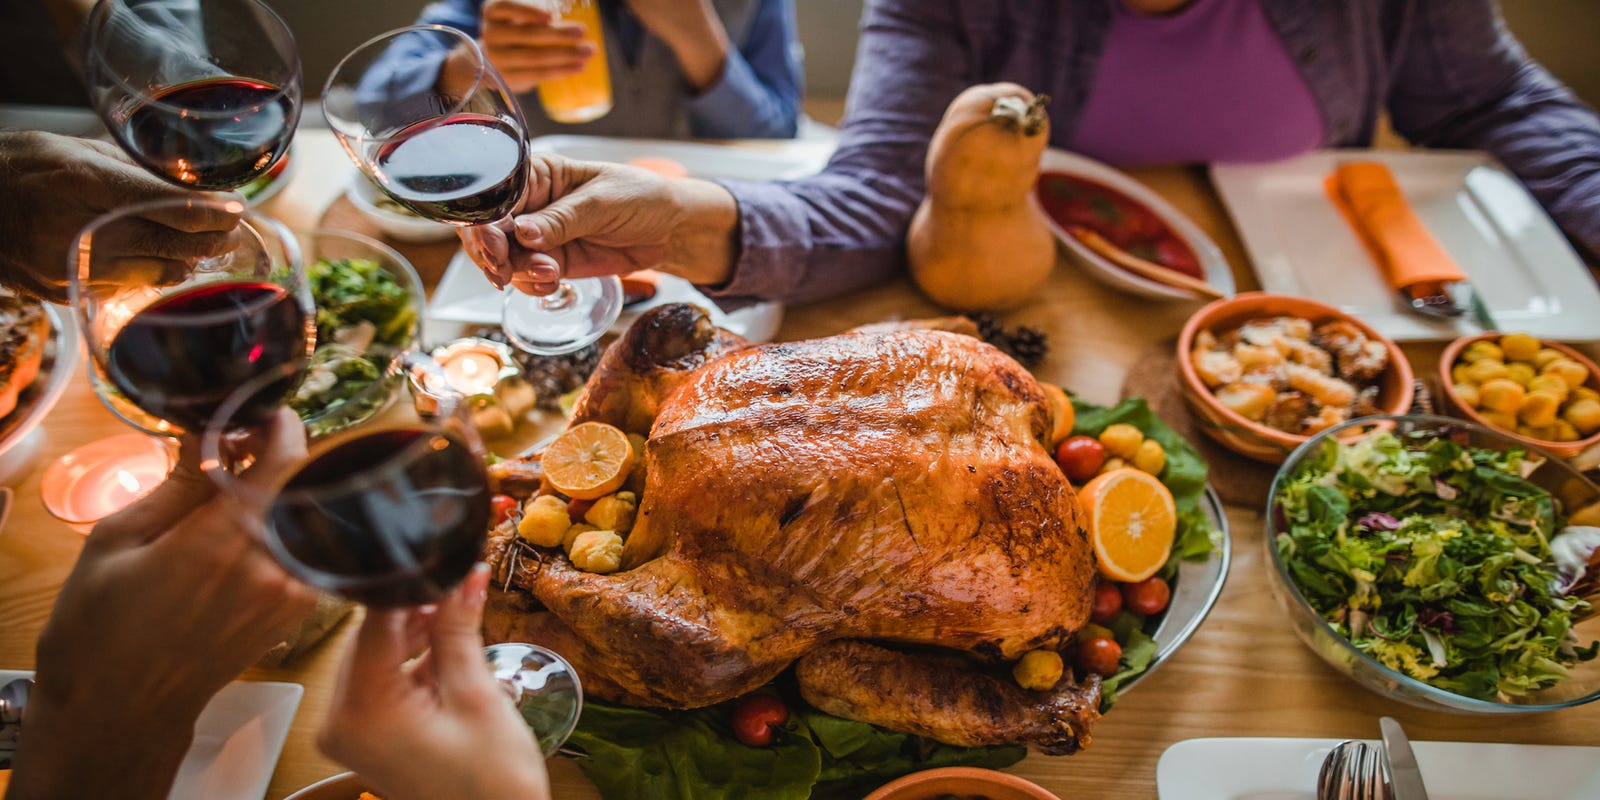 Christmas Thanksgiving Covid Tips For Family Gatherings Amid Virus